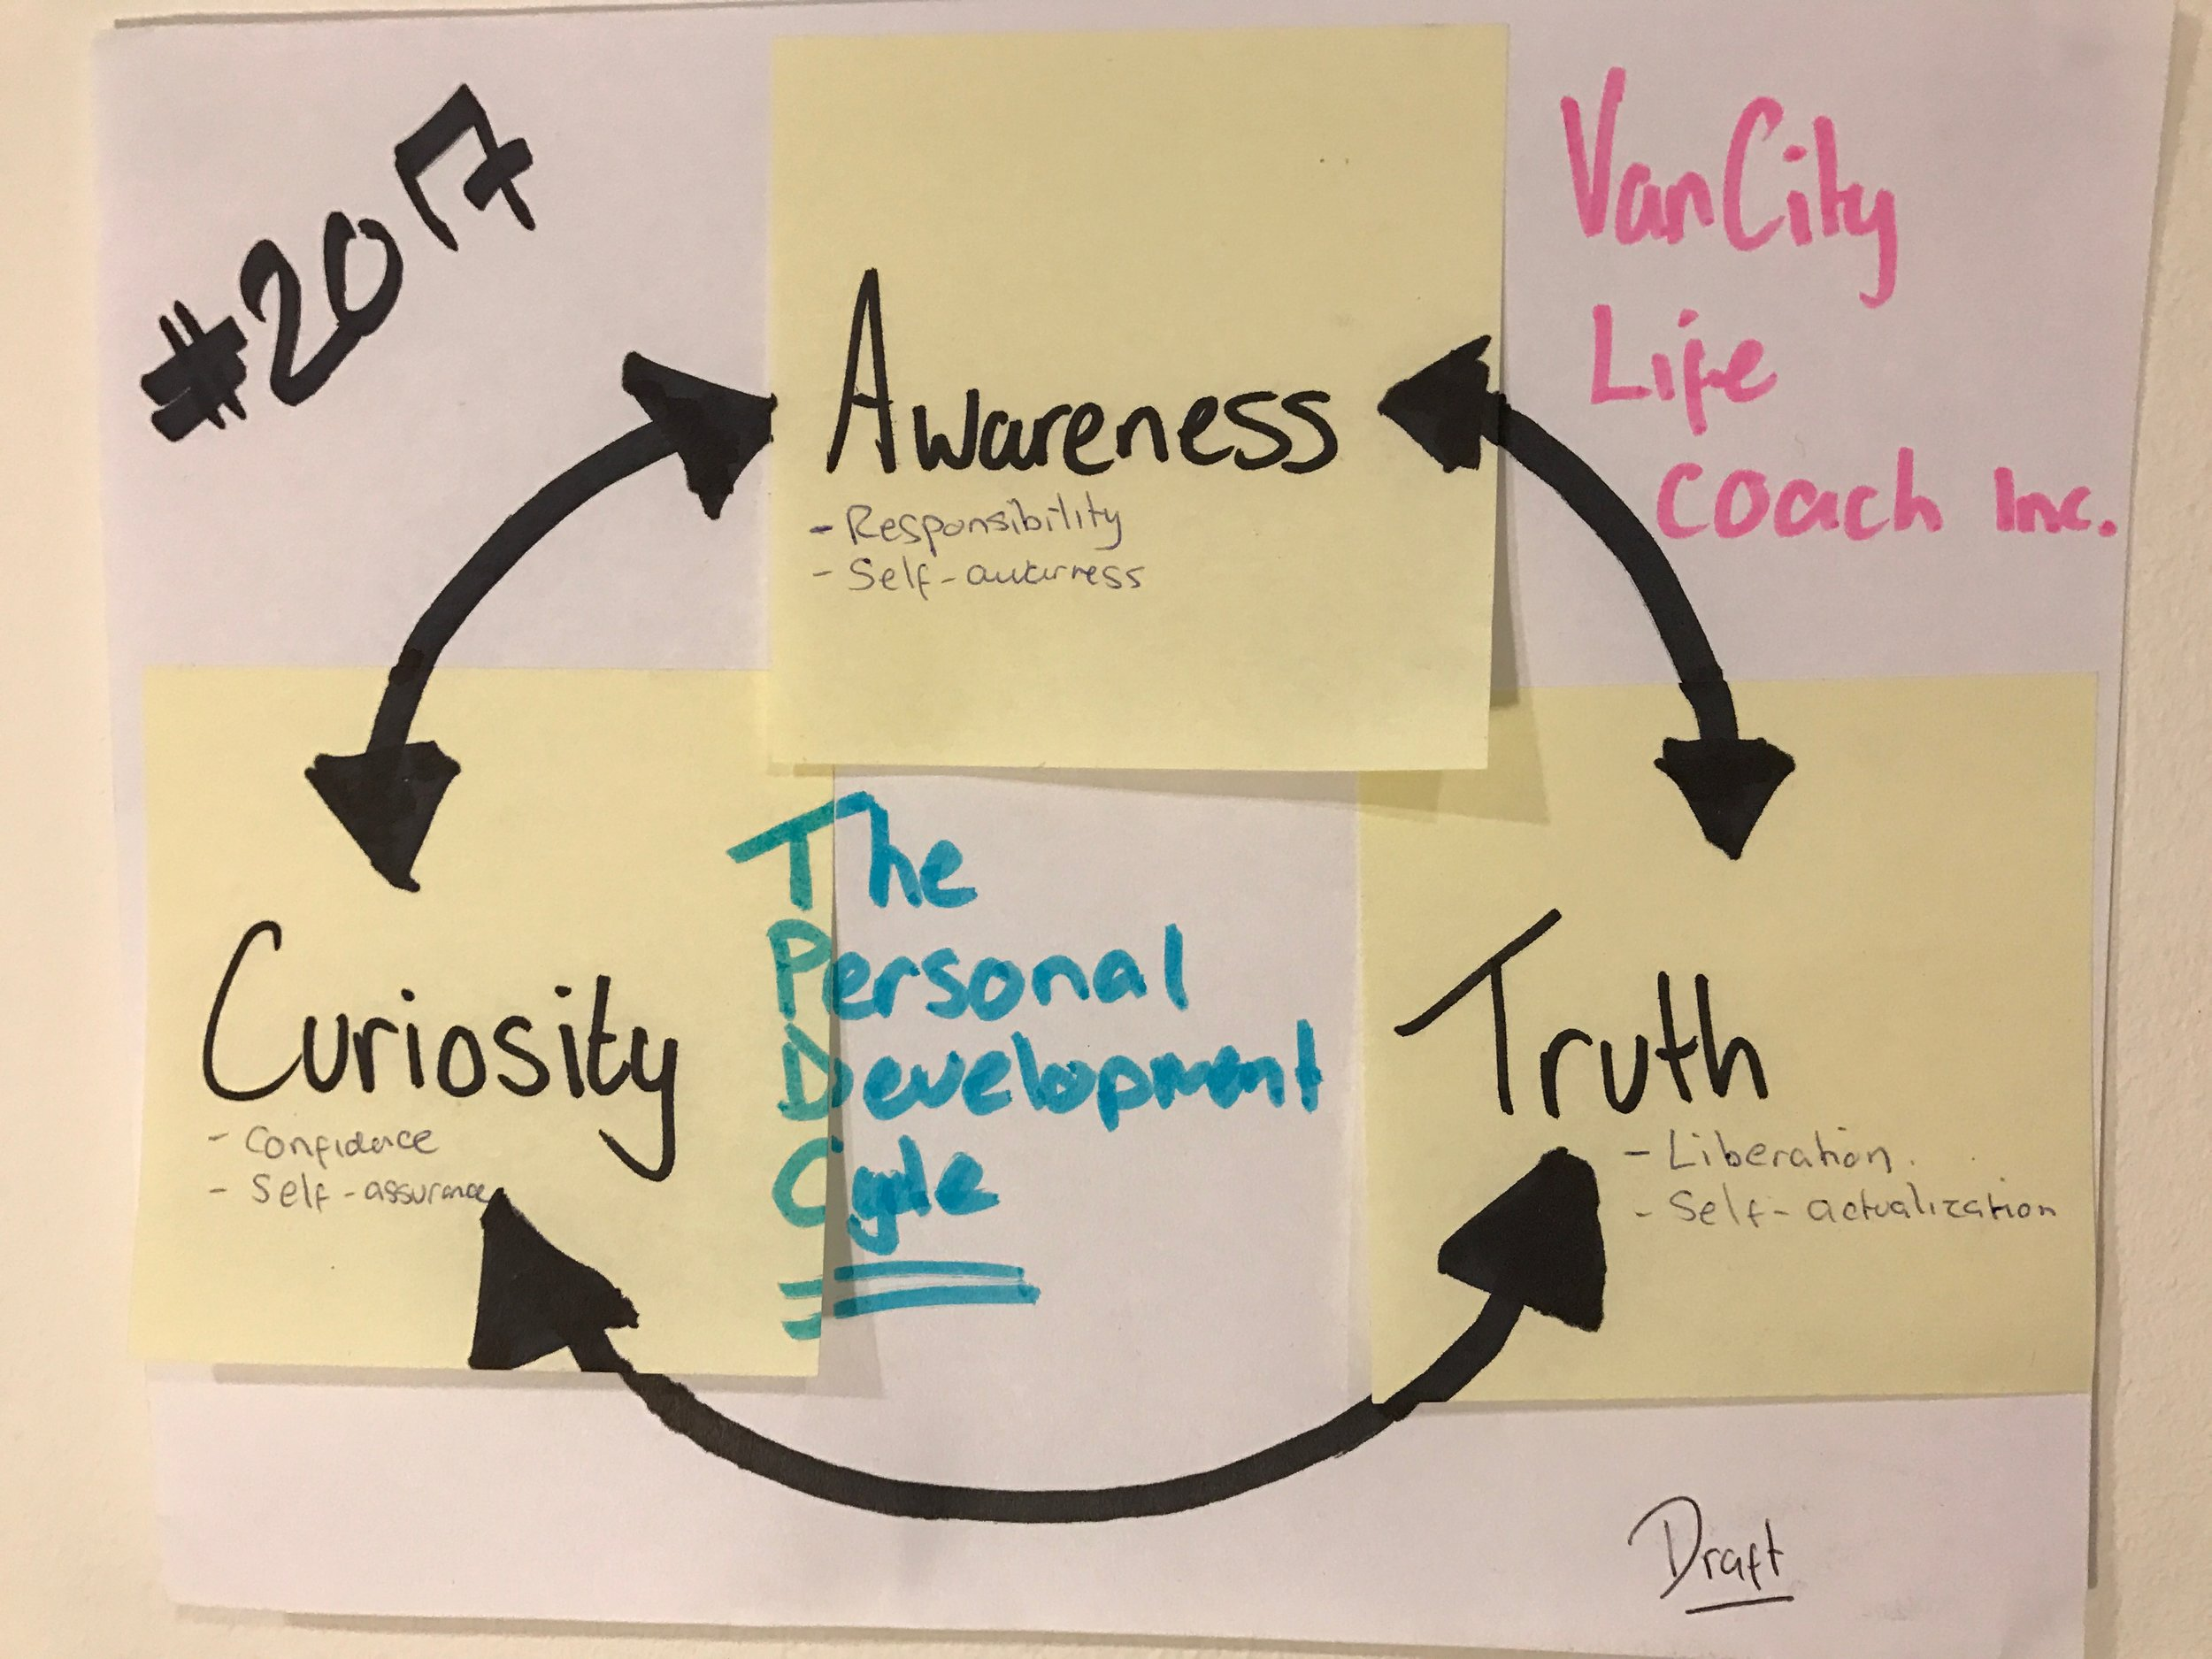 The Personal Development Cycle